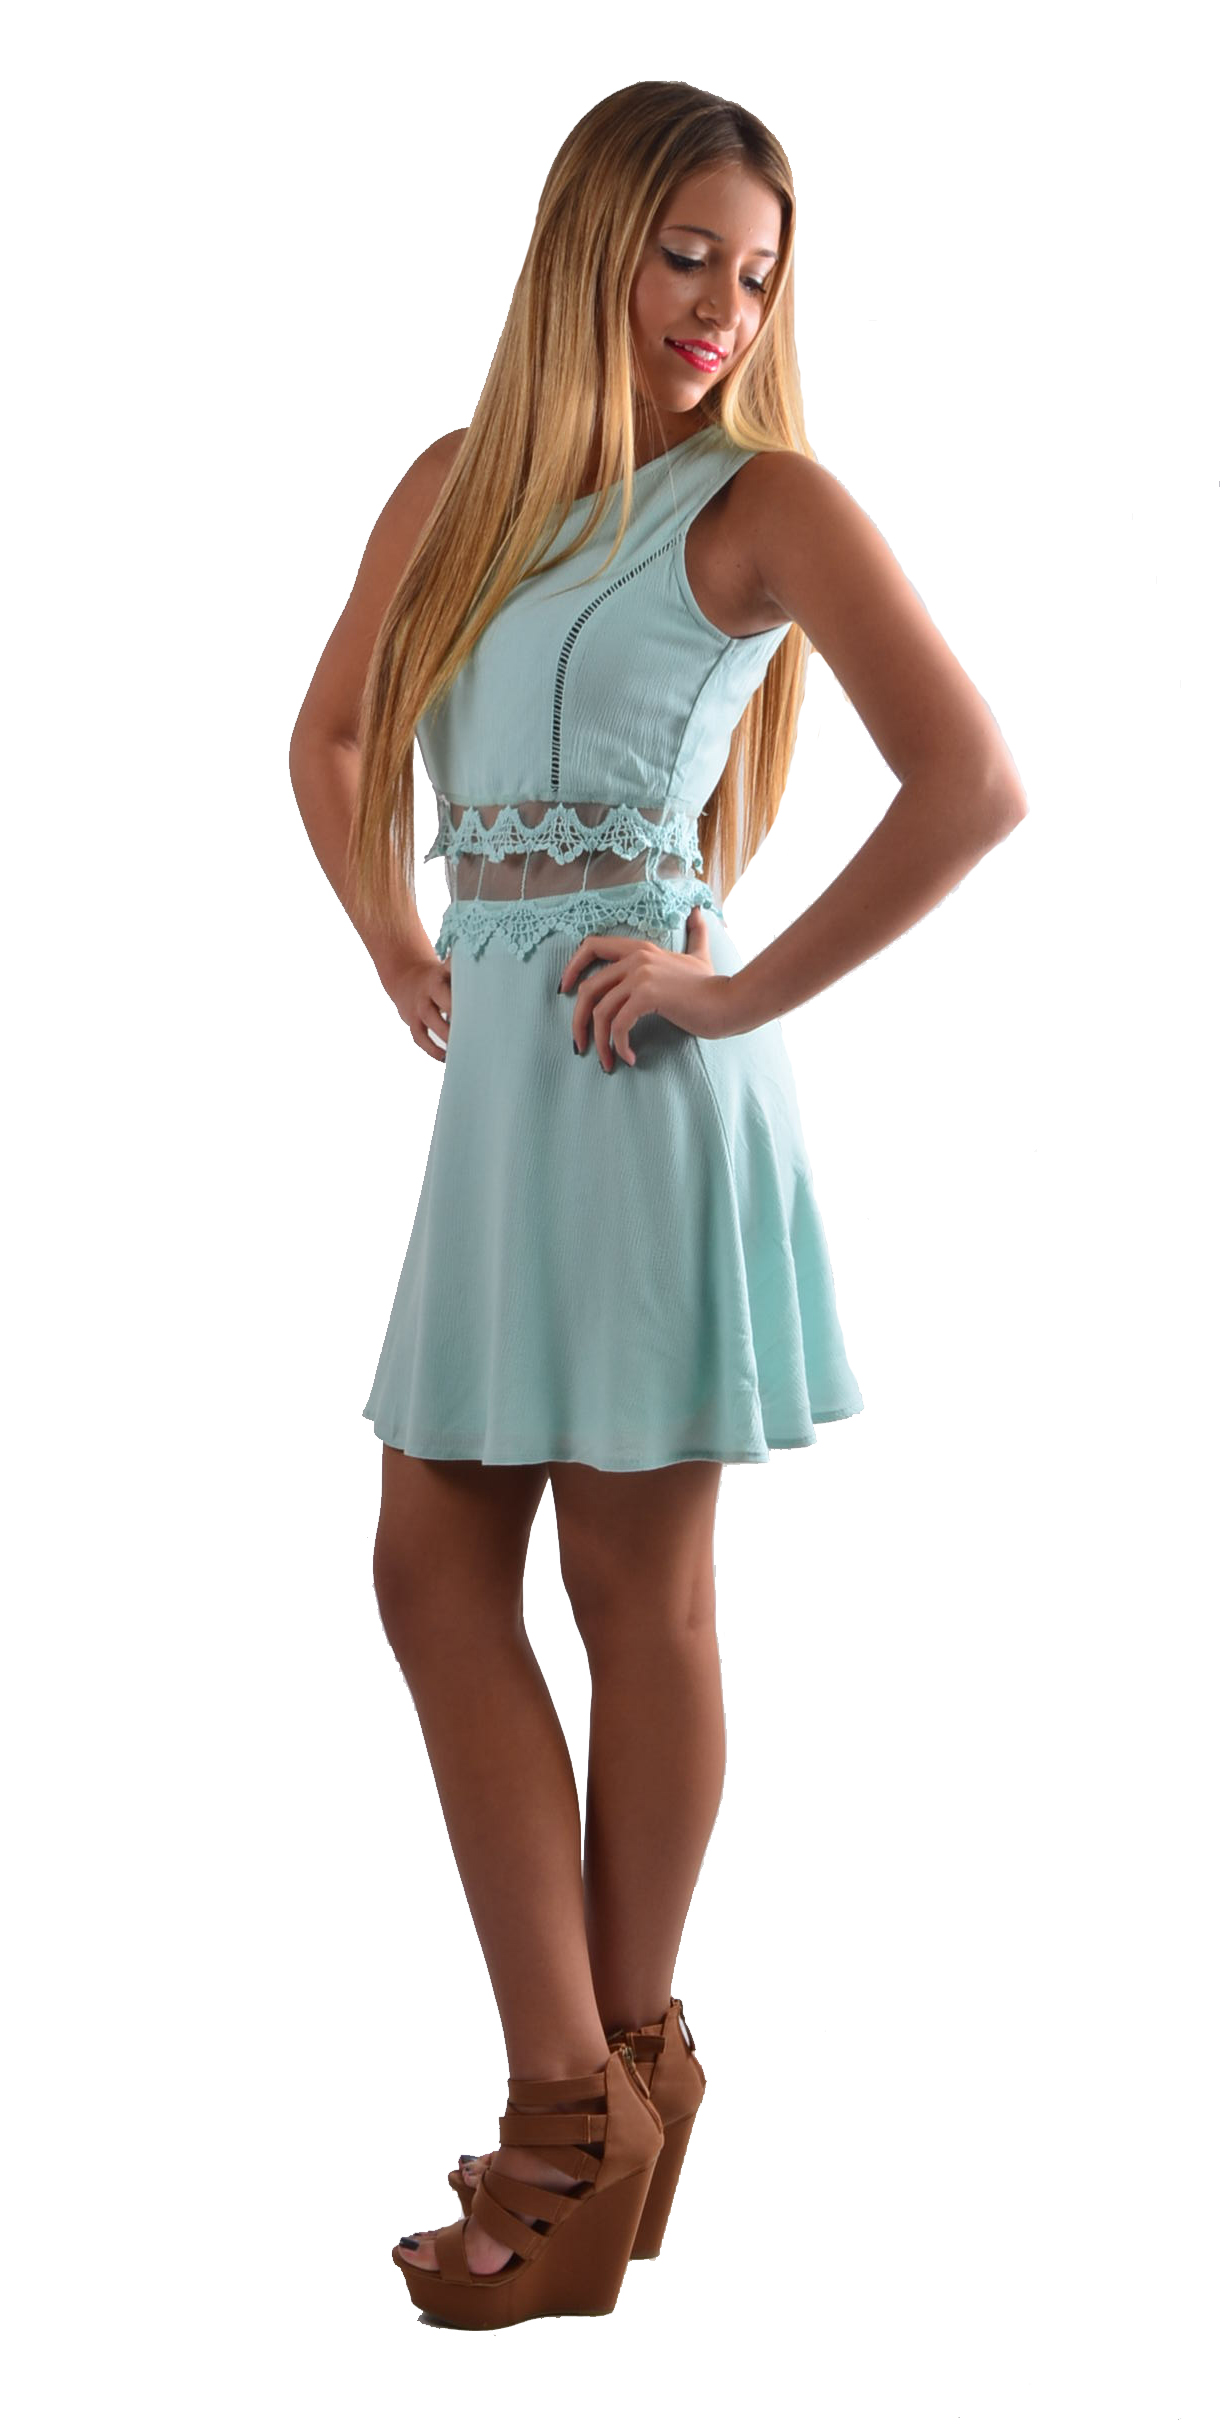 Blue Day Dress - Mint Sleeveless Peek-a-Boo Mini Dress | UsTrendy